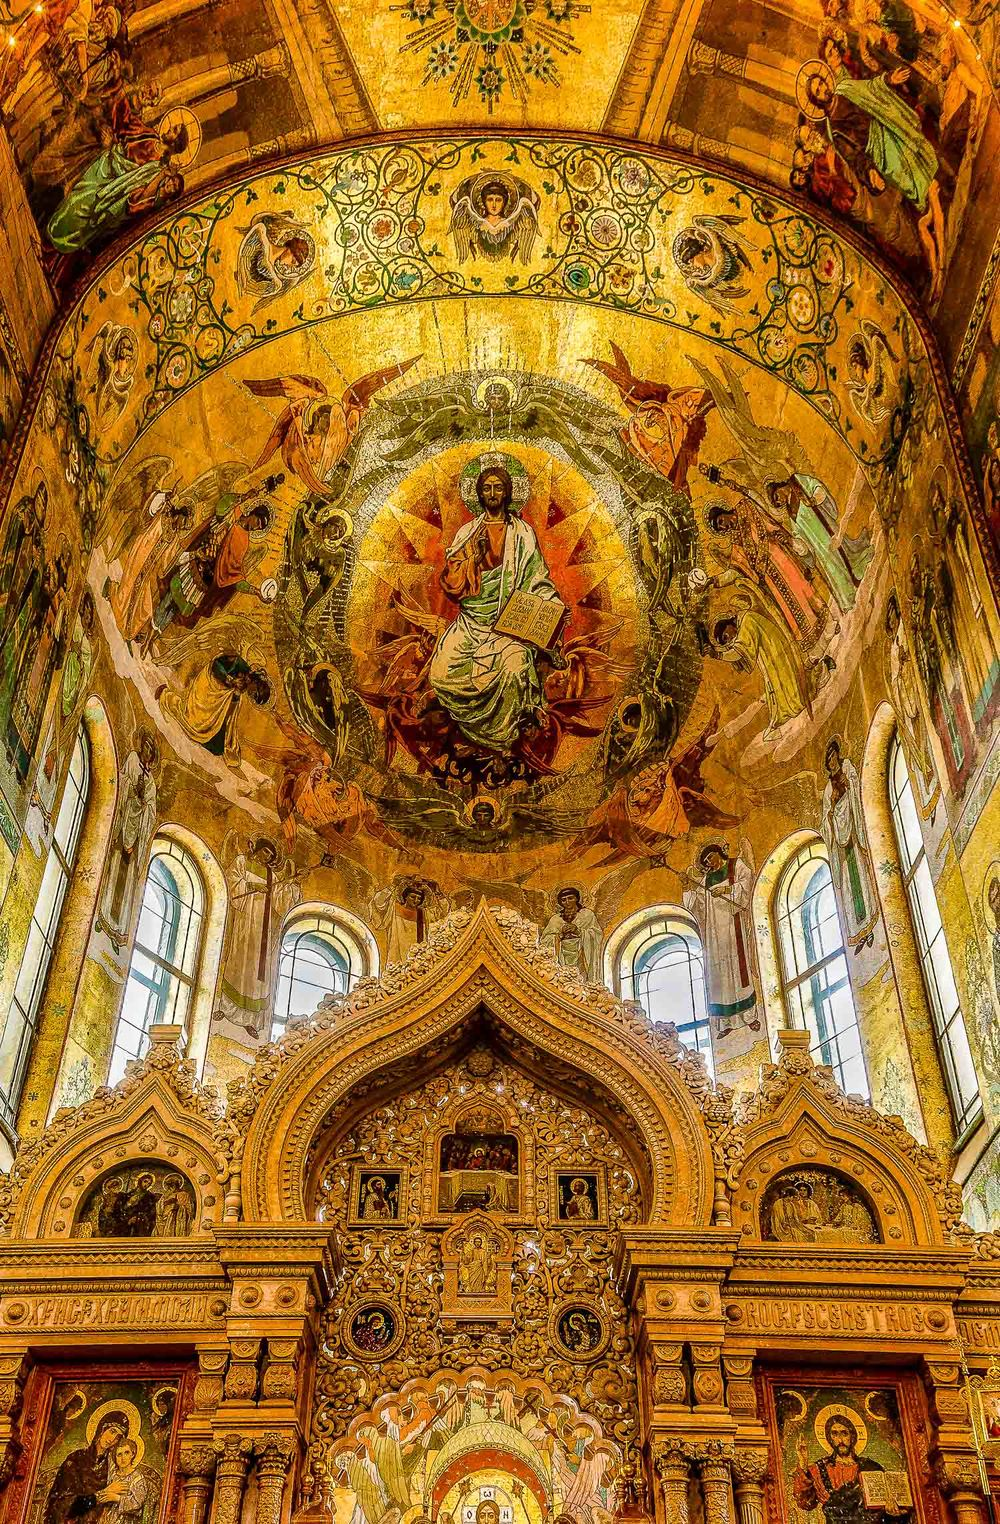 Church Ceiling, Church of Savior on the Spilled Blood, St. Peter